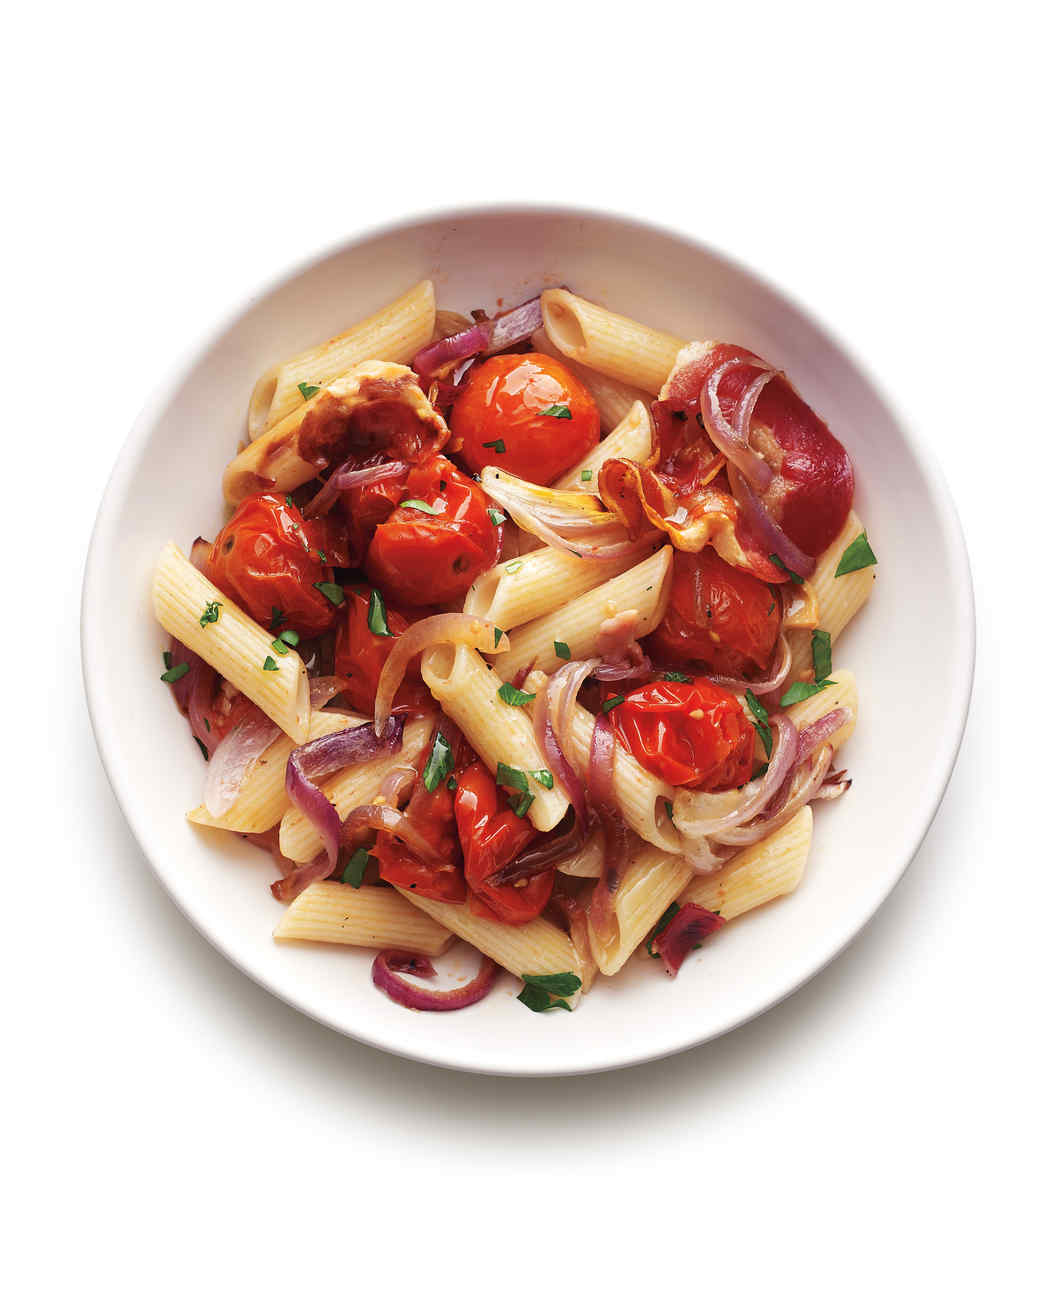 proscuitto-tomato-penne-036-med109842.jpg